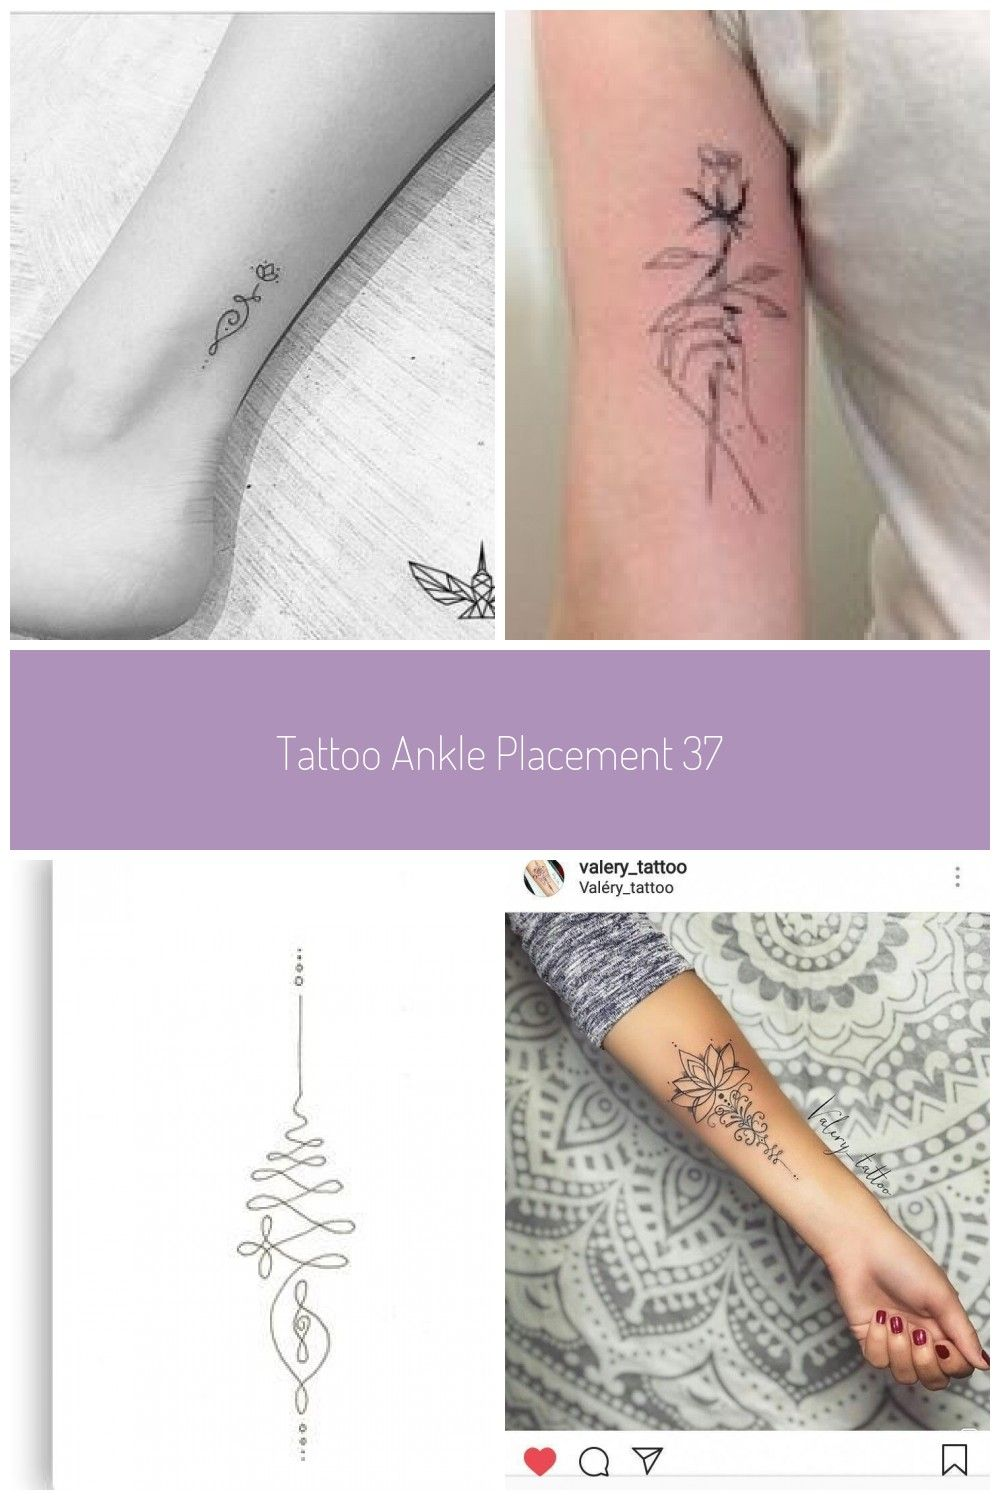 Tattoo Ankle Placement 37 Ideas Tattoo Unalome Tattoo Placement Tattoo Ankle Placement 37 Ideas In 2020 Unalome Tattoo Tattoos Symbol Tattoos With Meaning